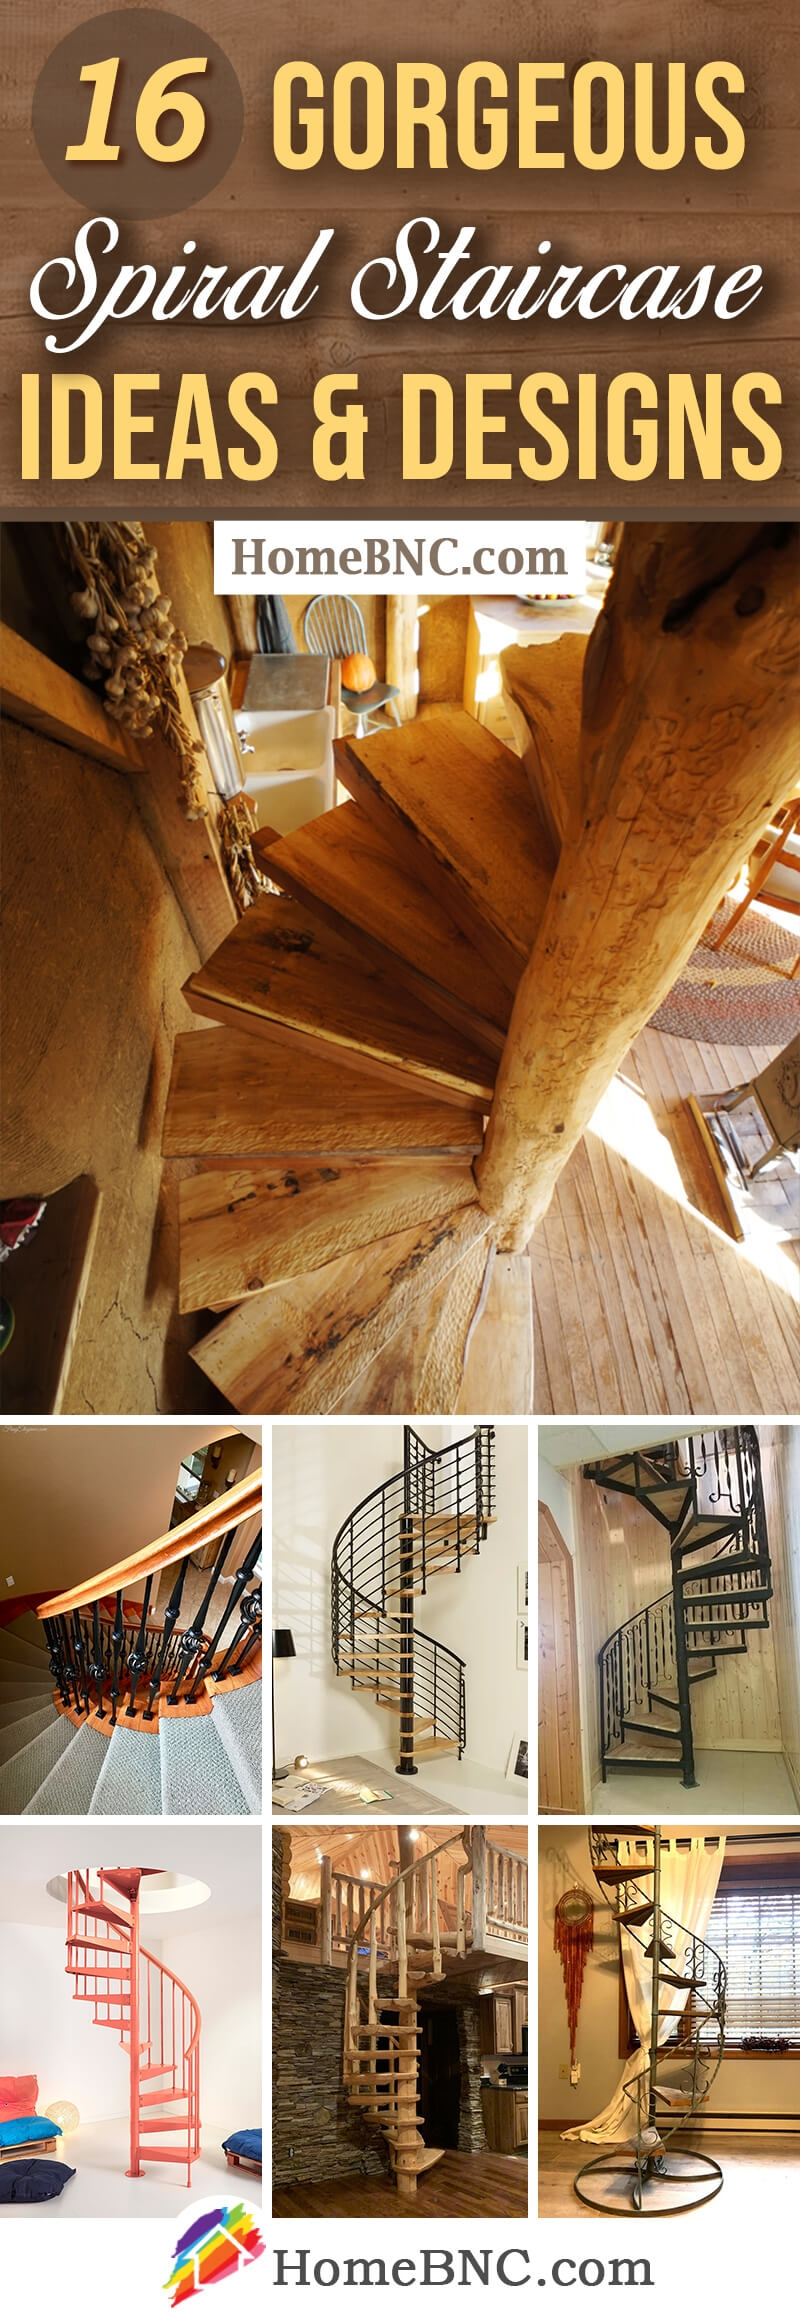 16 Best Spiral Staircase Ideas And Designs For 2020   Wooden Spiral Stairs Design   Different Style   Circular   Curved   Space Saving   Easy Diy